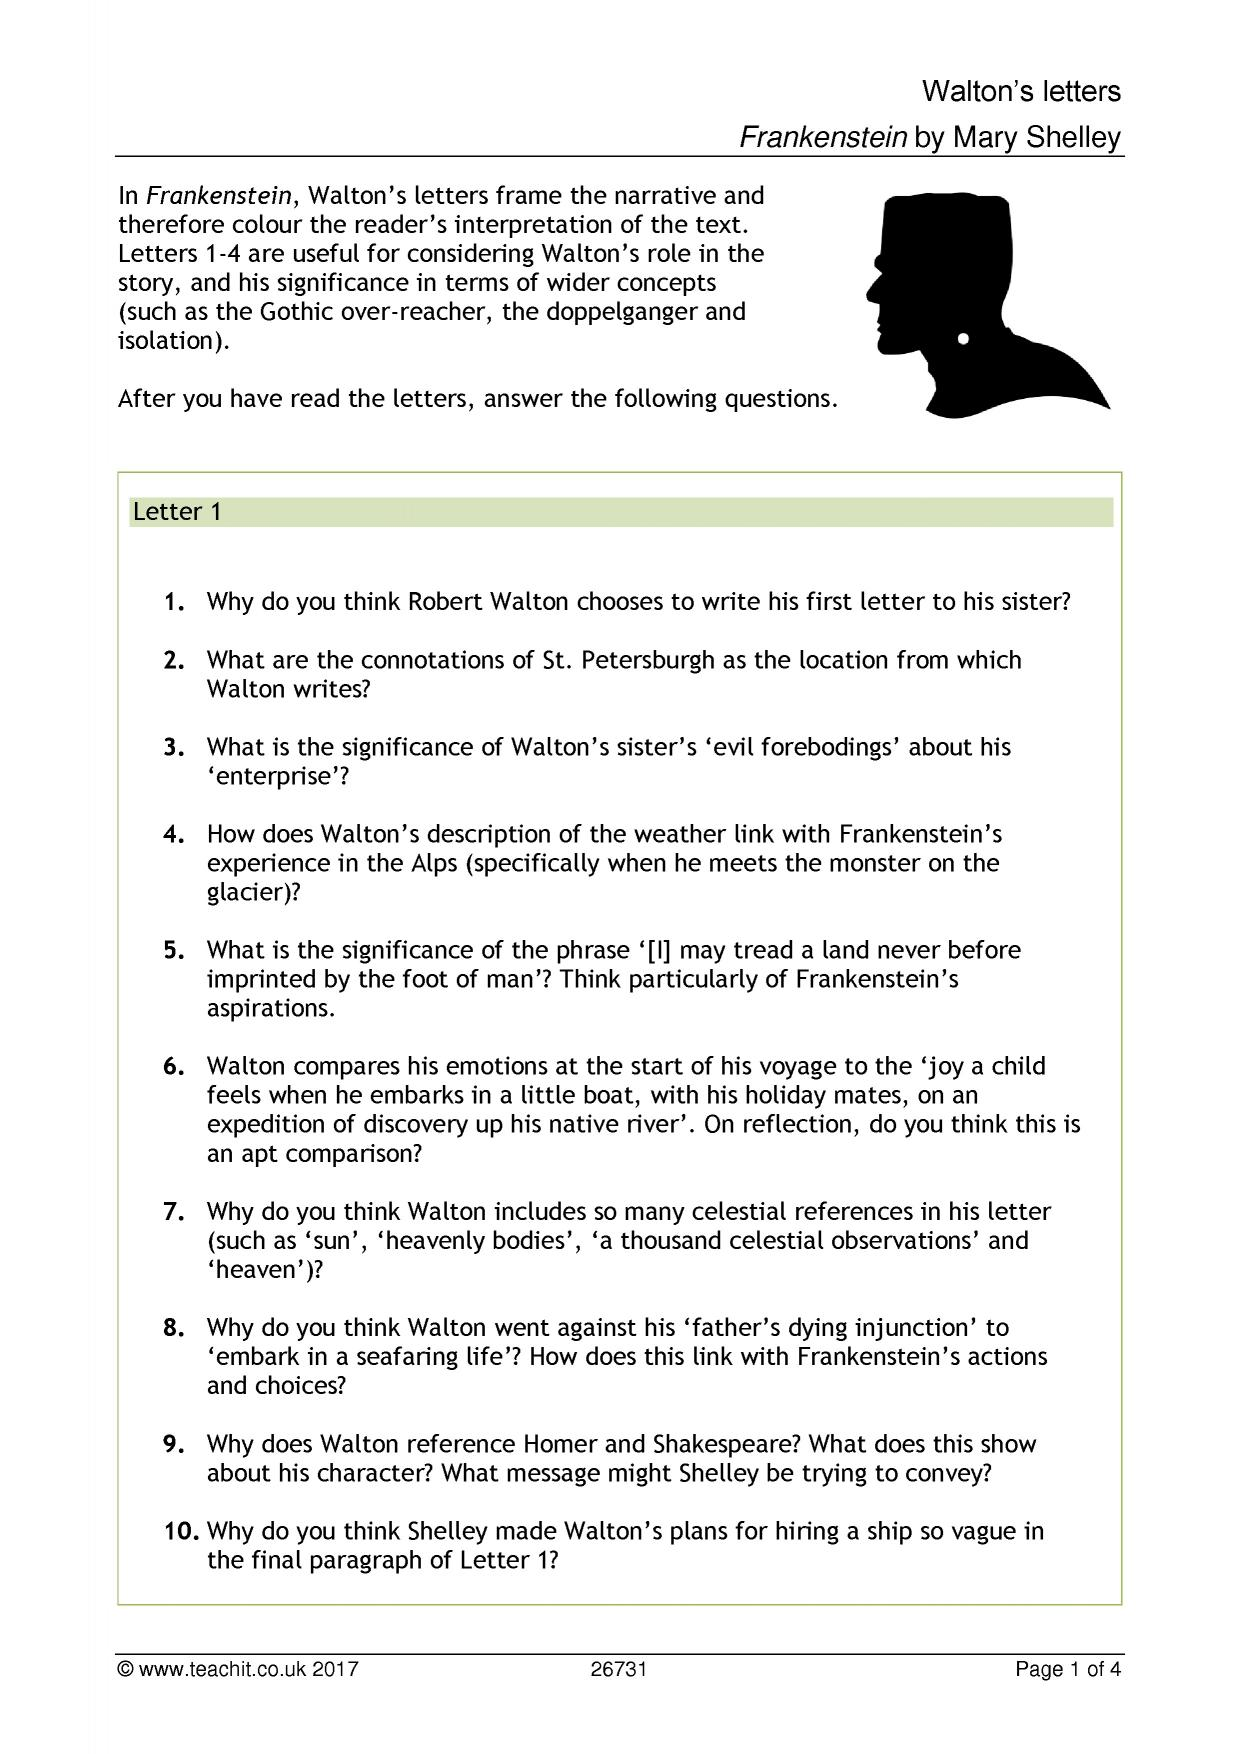 KS4 Frankenstein by Mary Shelley – Frankenstein Worksheets